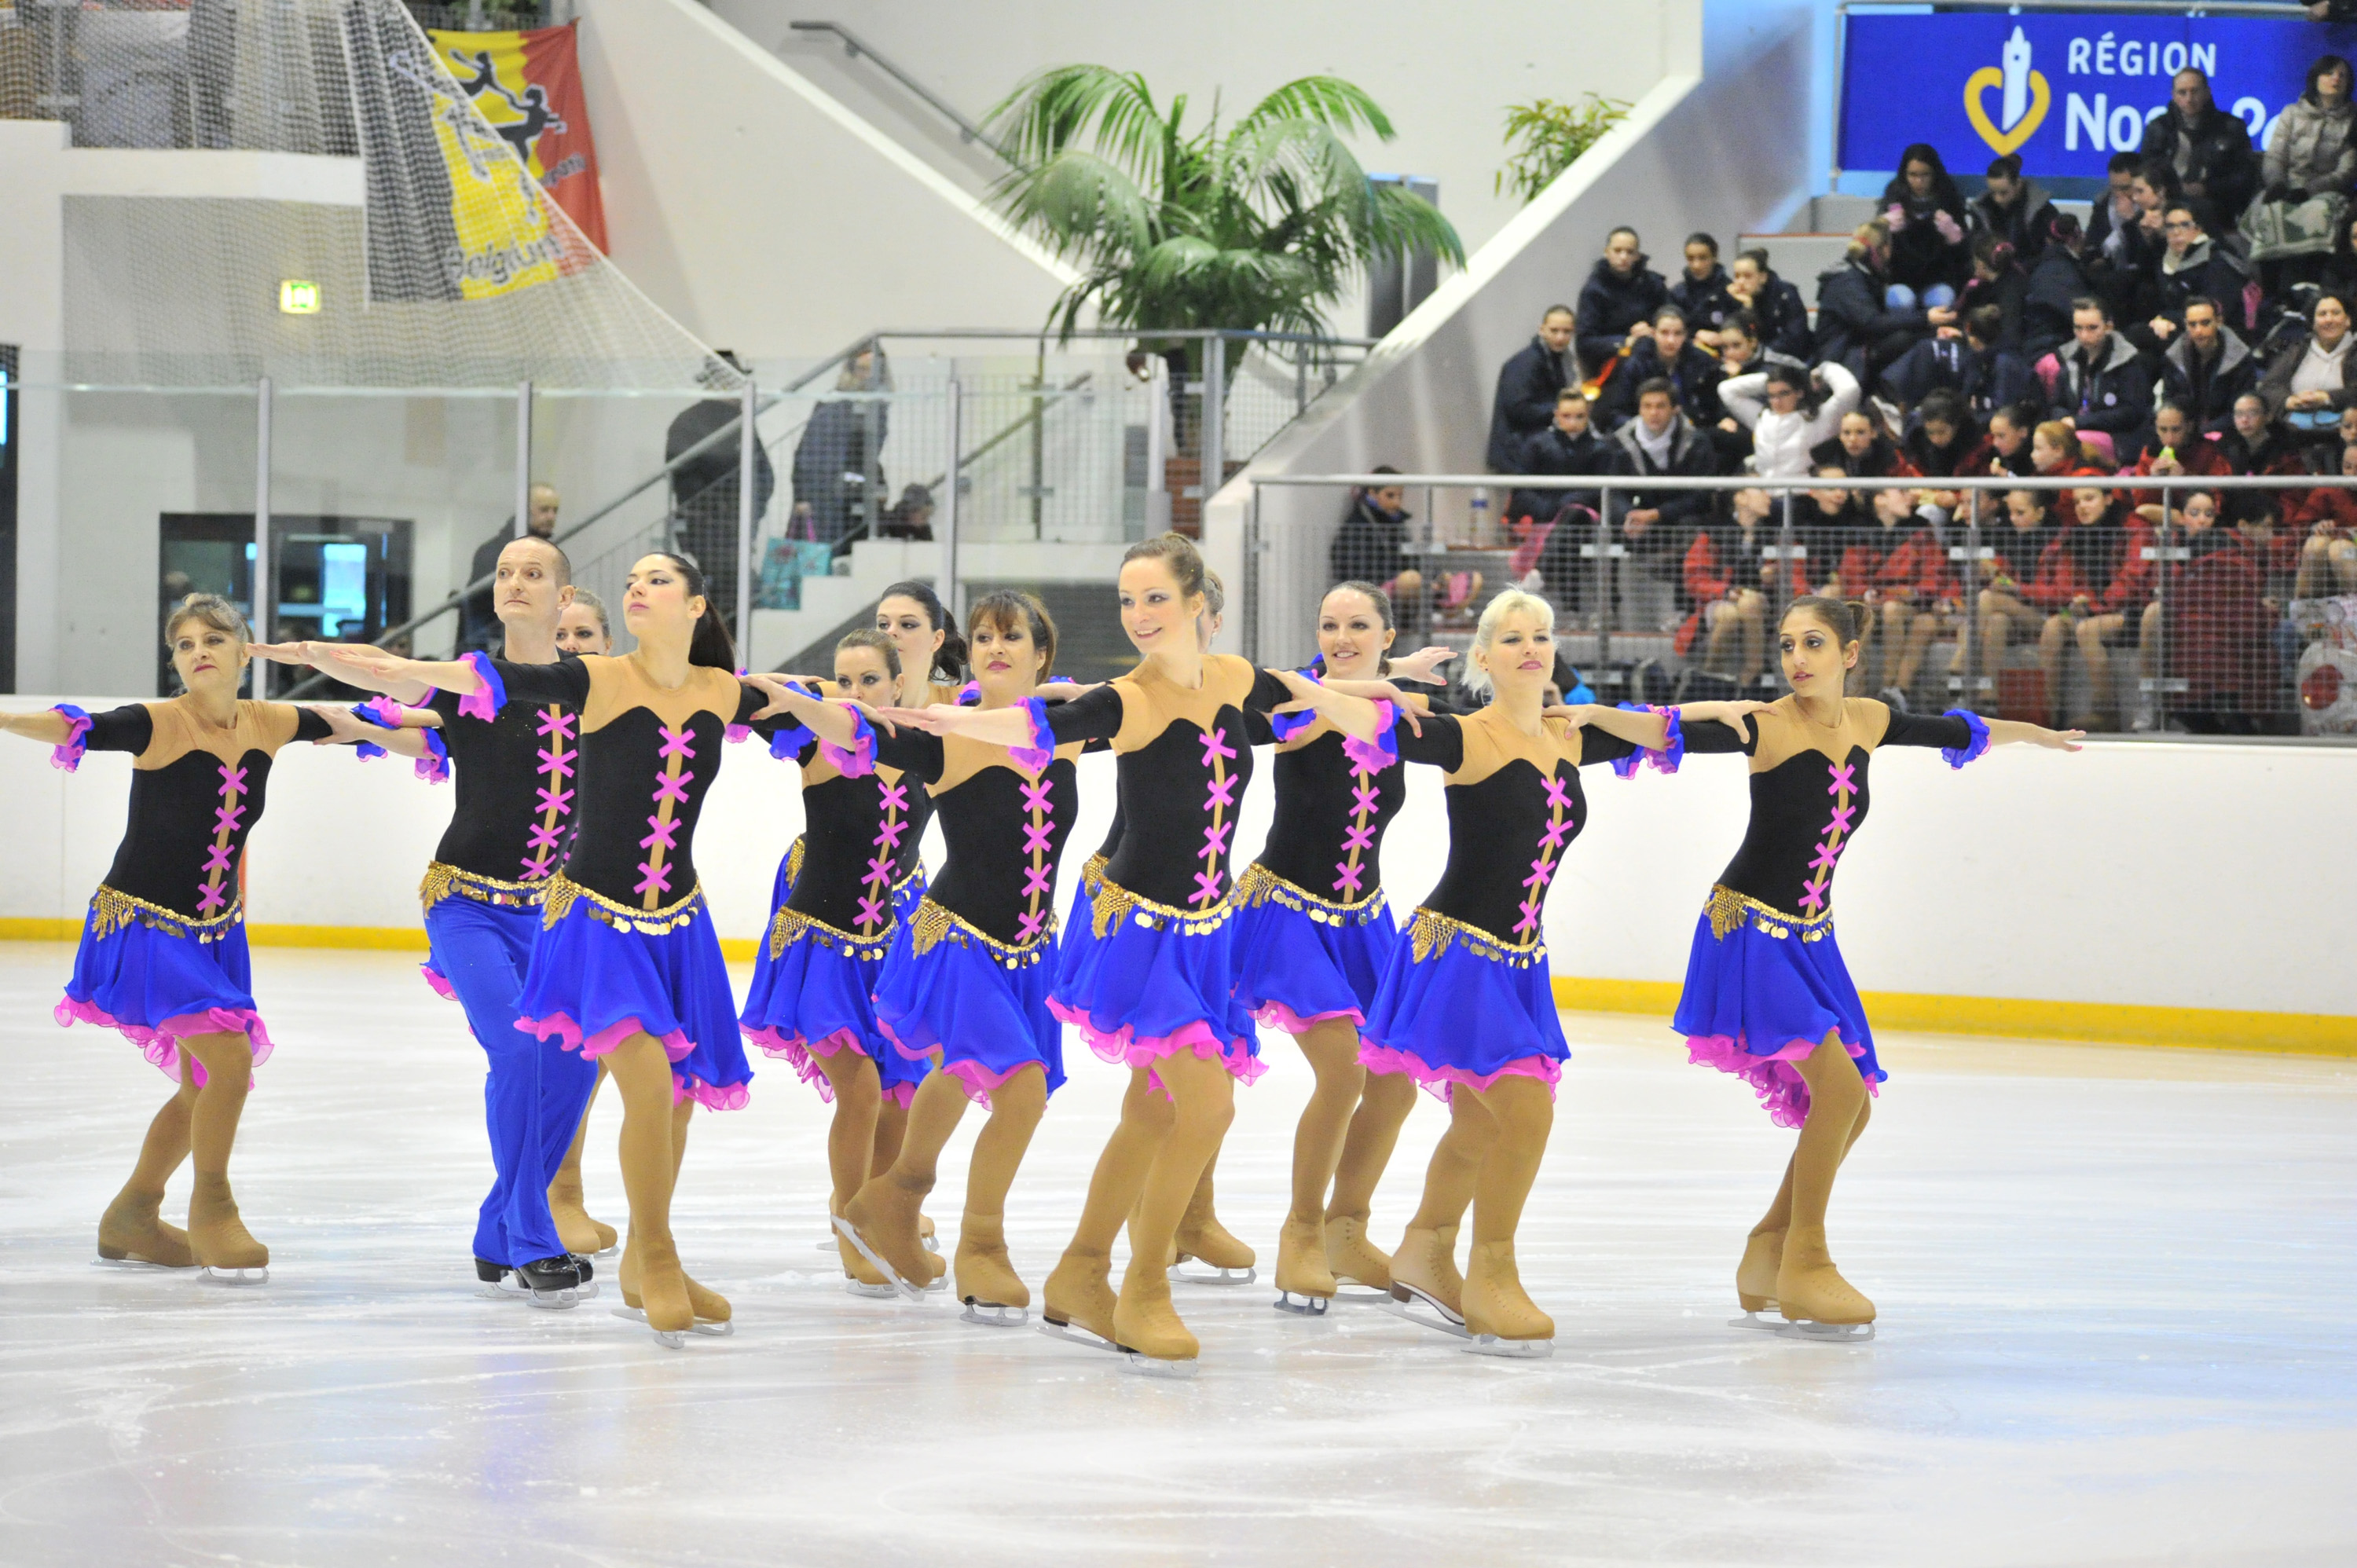 Skate London Synchro Opens – Monday 11th November 2019